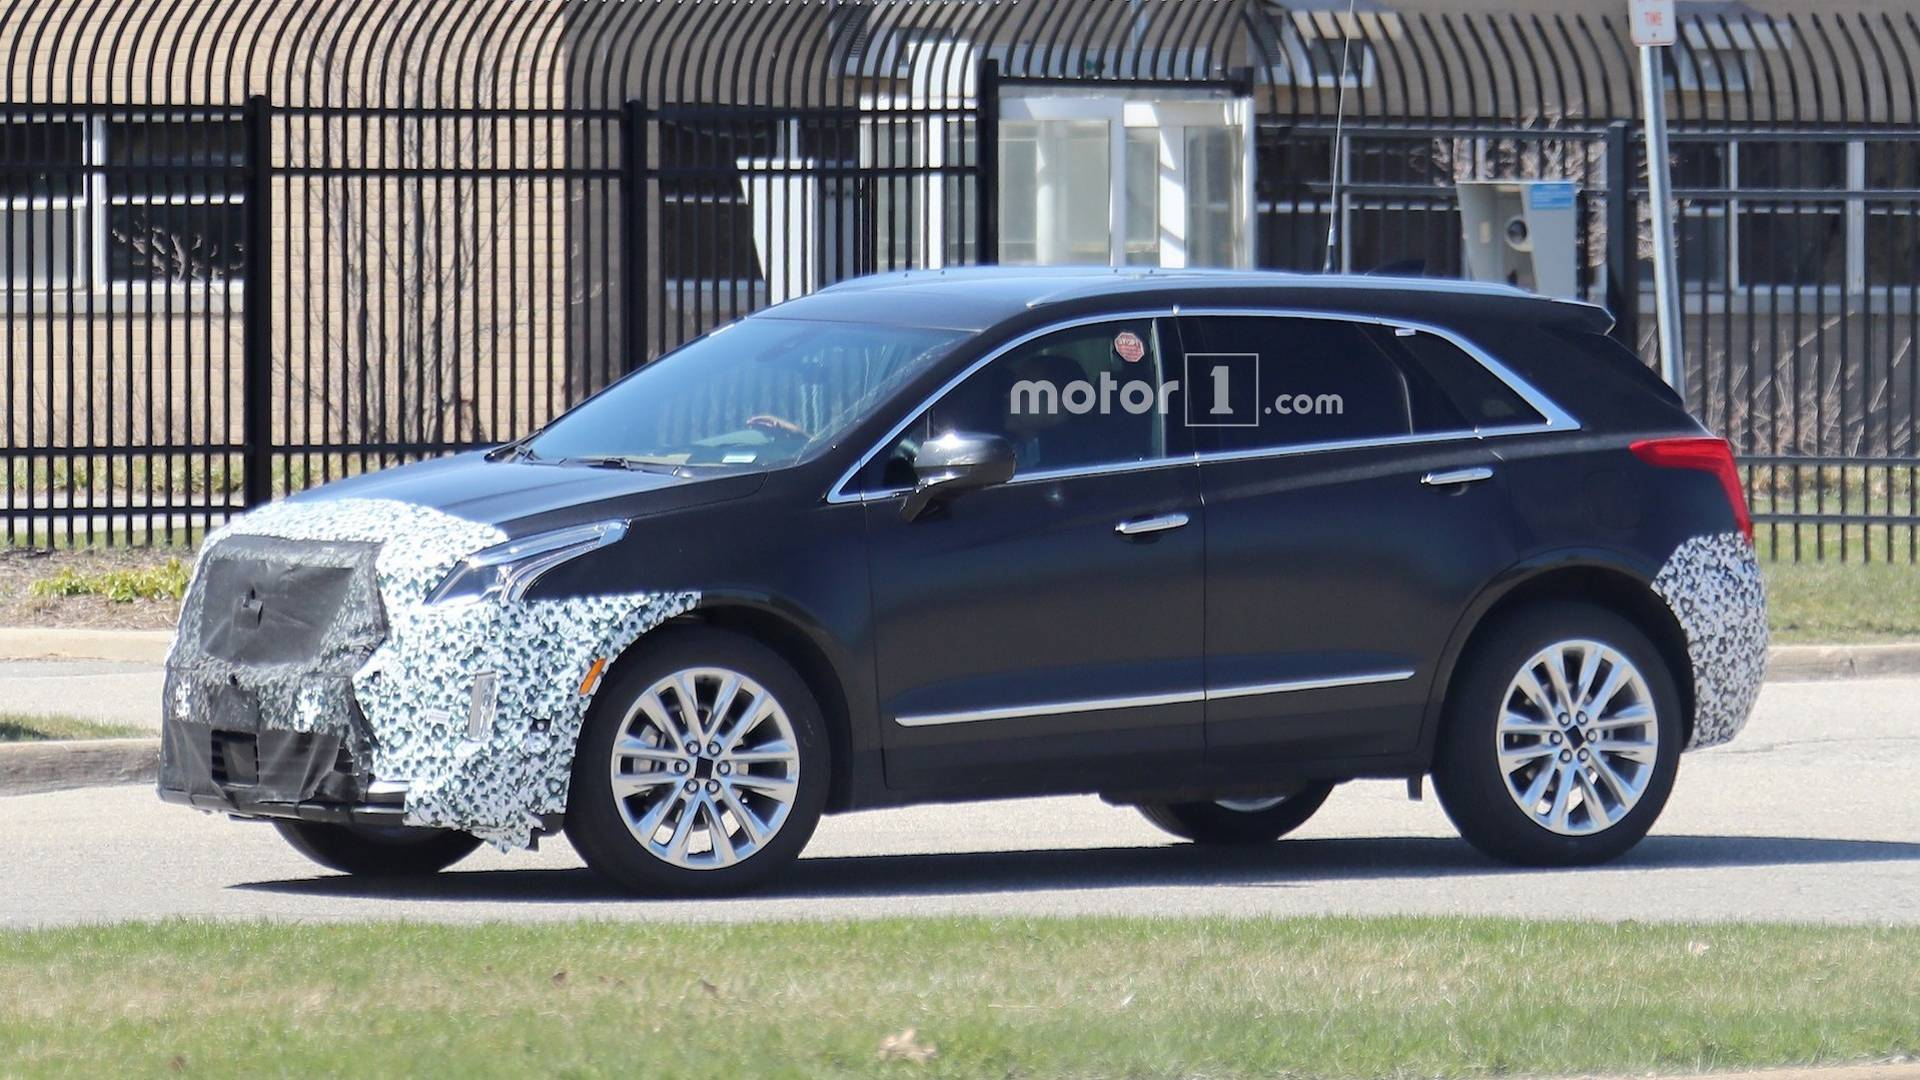 98 The Best 2020 Spy Shots Cadillac Xt5 Redesign